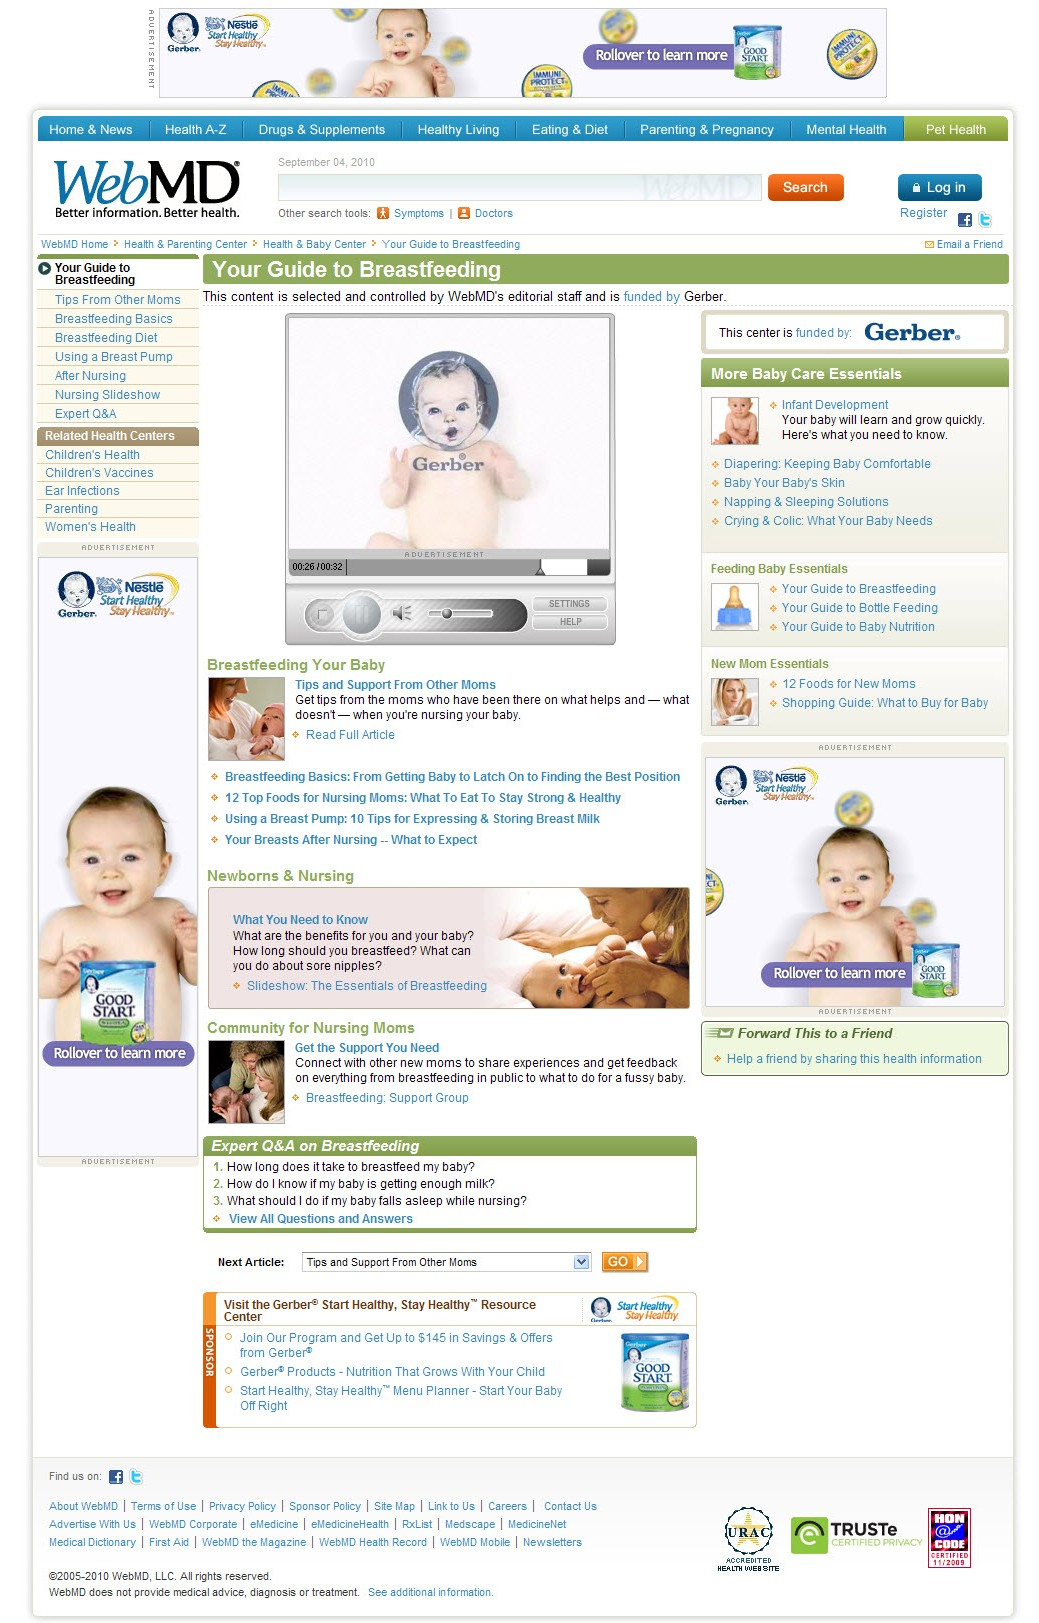 How Many Gerber Ads Can You Count On That Page? I Count At Least 6